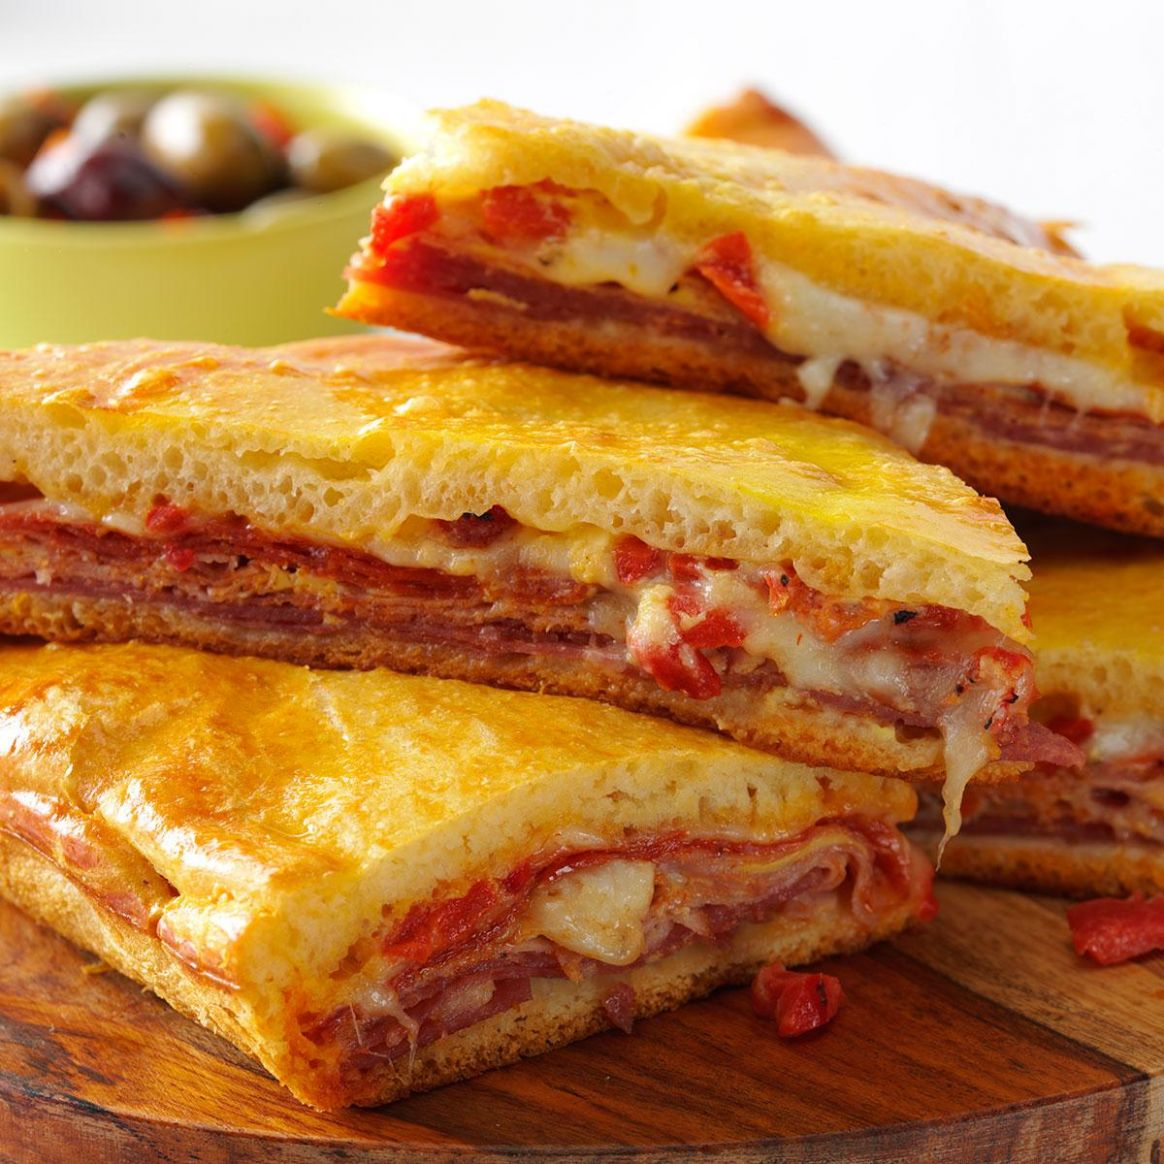 Hot Antipasto Sandwiches - Sandwich Recipes With Ingredients And Procedure